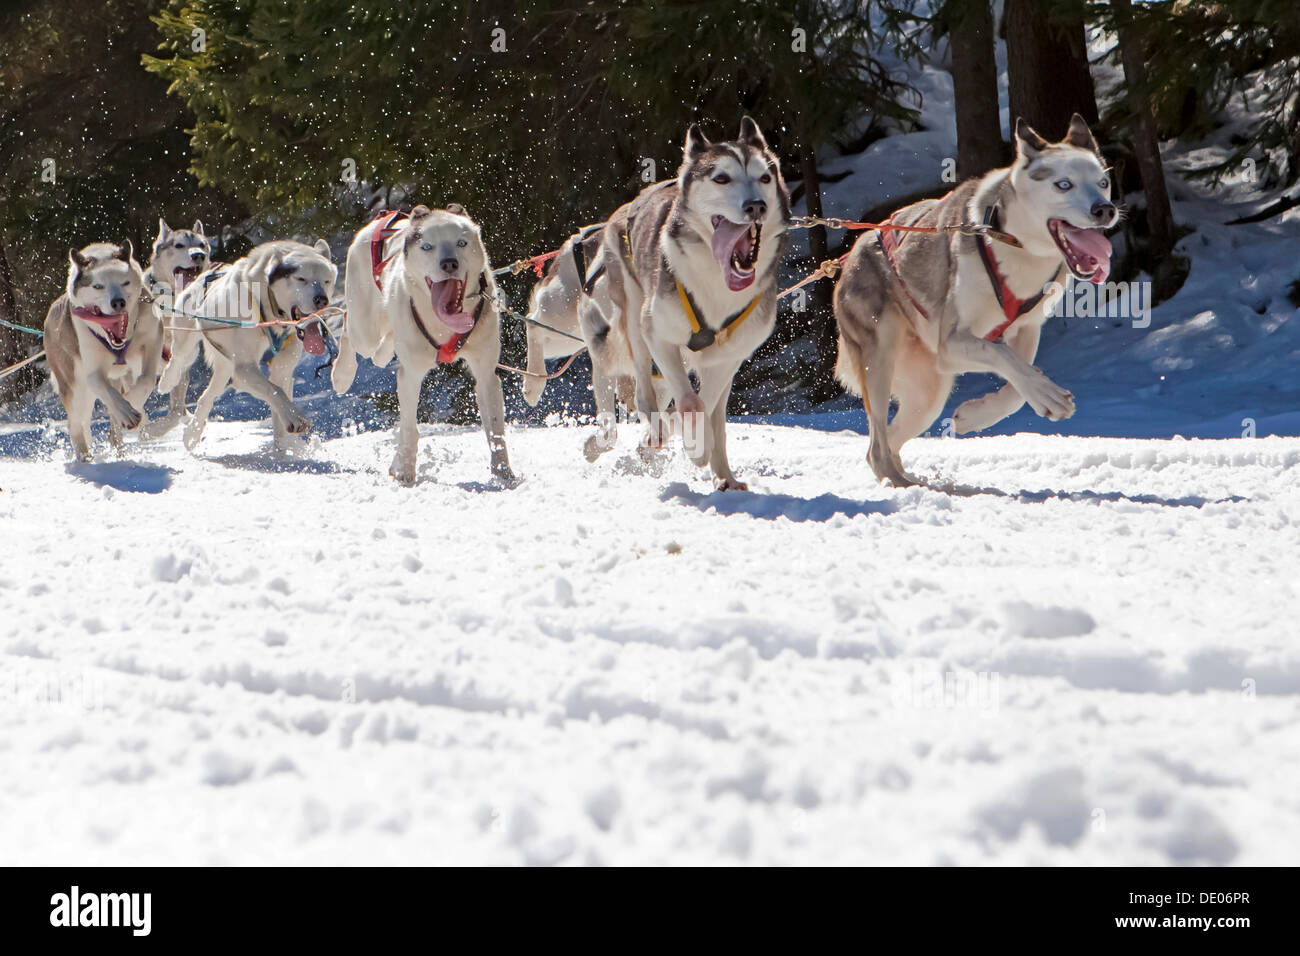 Dog sled or dog sledge, sledge dogs running through a forest, in winter - Stock Image